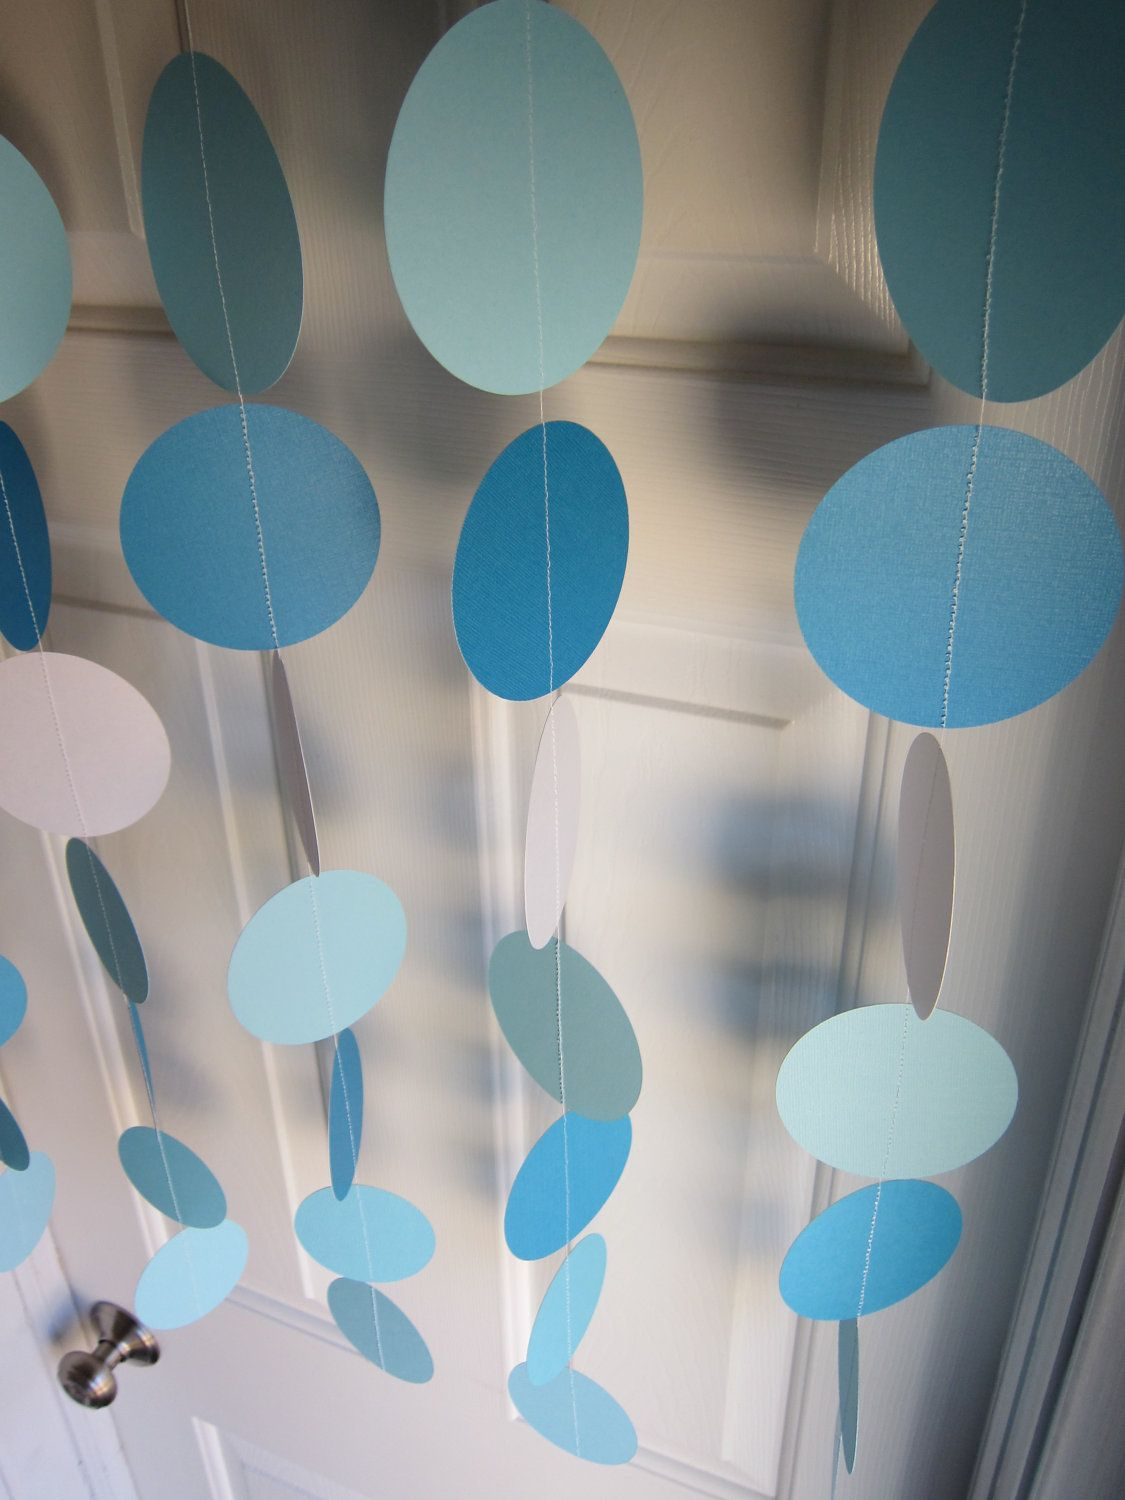 Paper Garland Blue and White Circles Dangling by SuzyIsAnArtist Frozen Bday  Party, Frozen Theme,